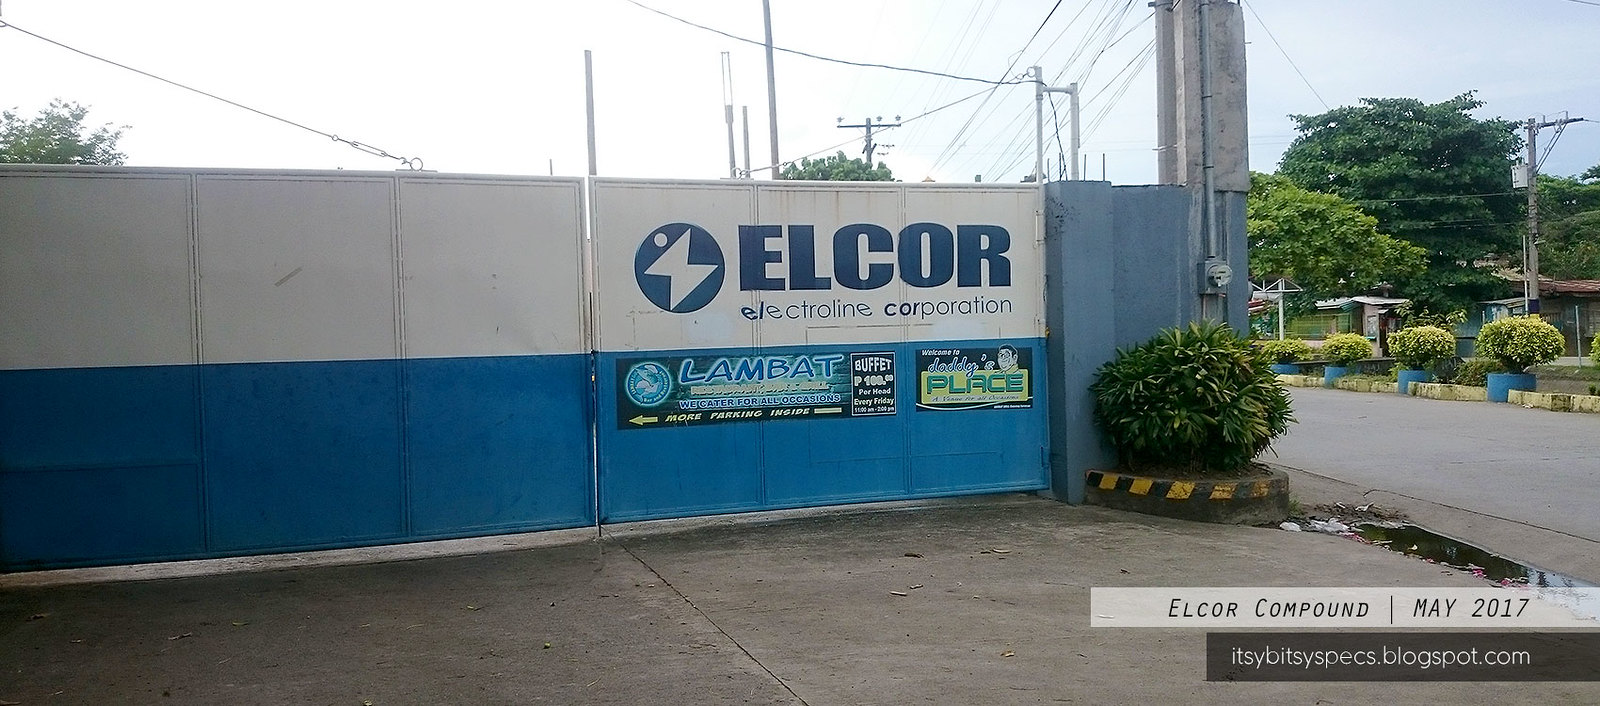 Elcor Compound